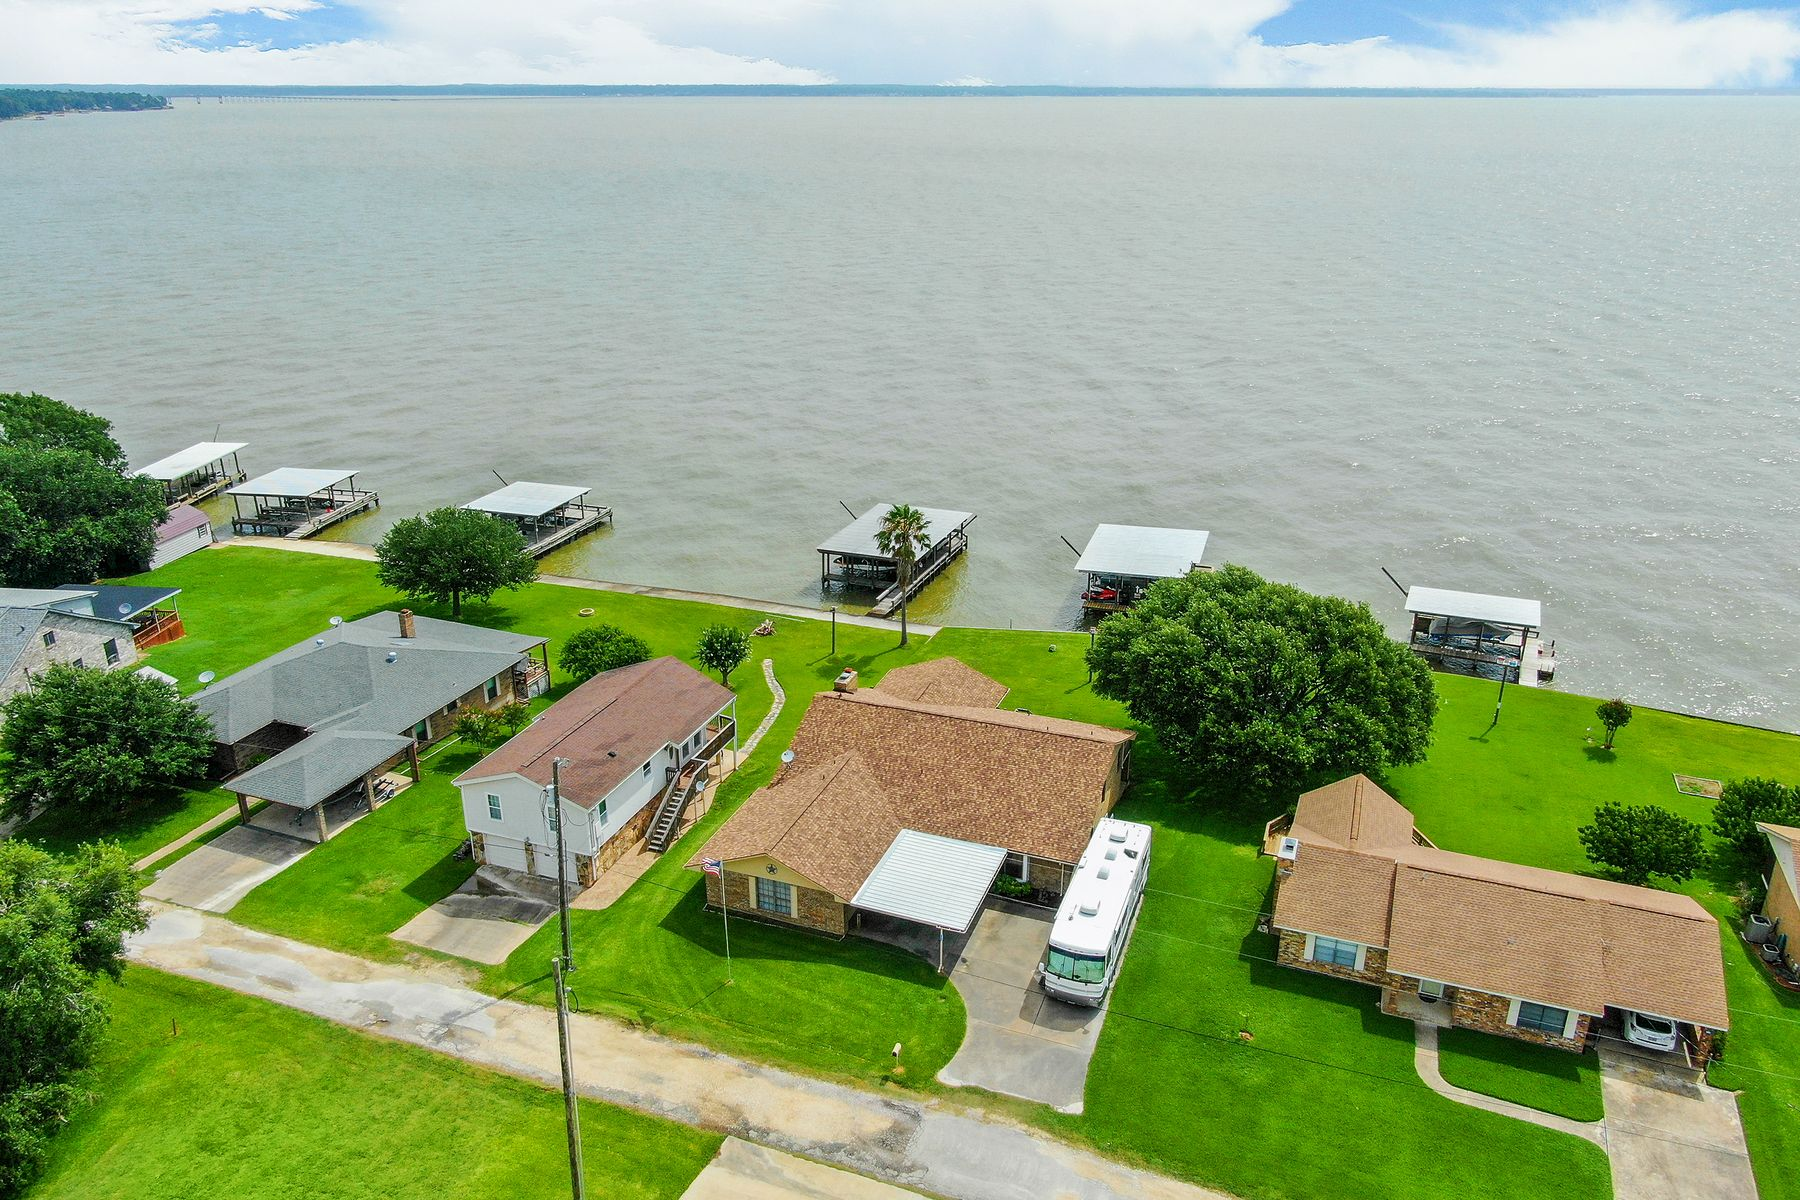 Single Family Homes for Active at 141 Fishermans Bend Drive Pointblank, Texas 77364 United States